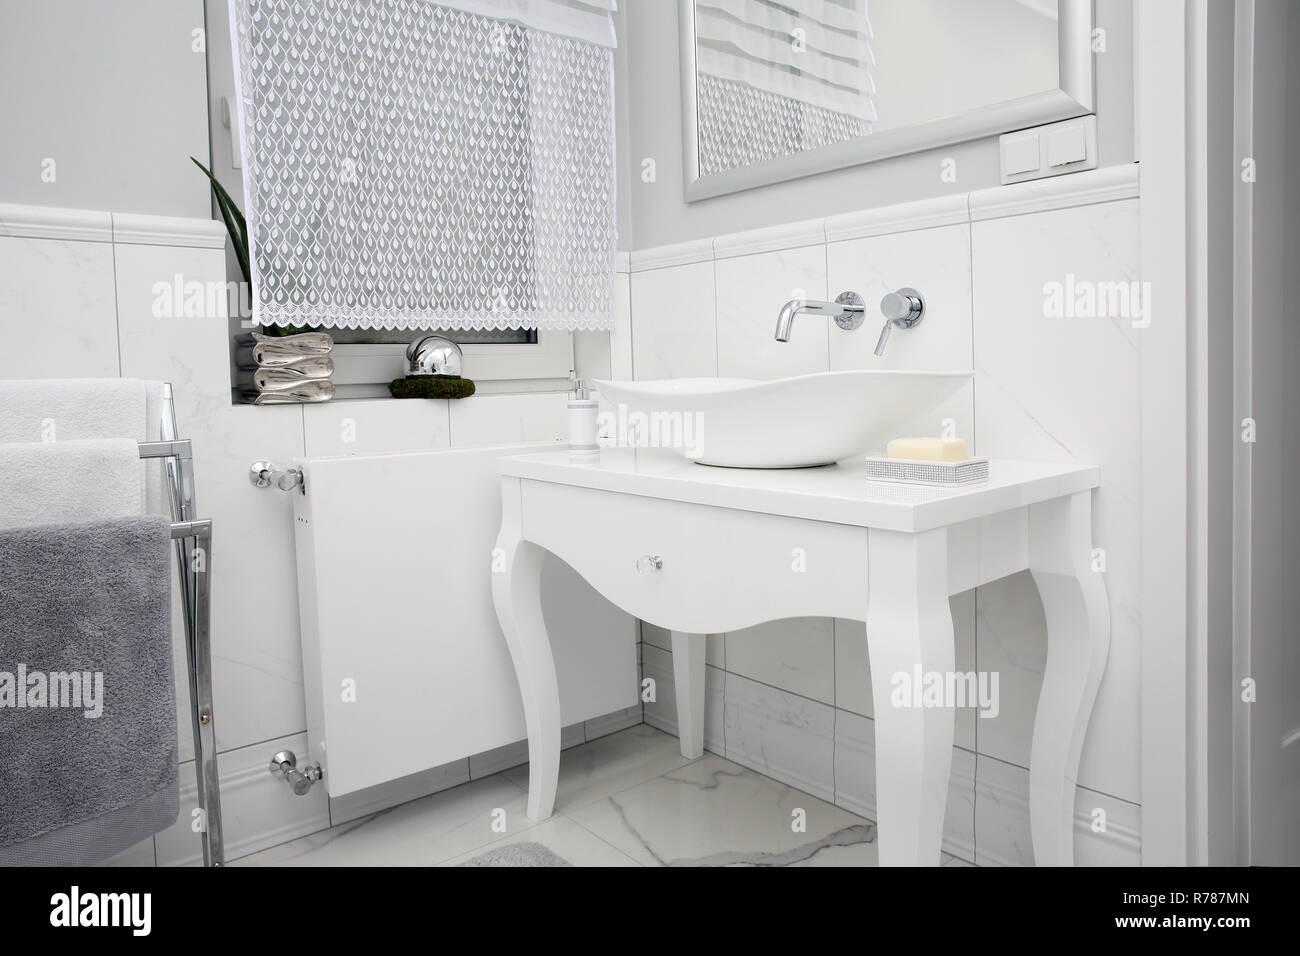 Bathroom in a beautiful style with marble tiles - Stock Image